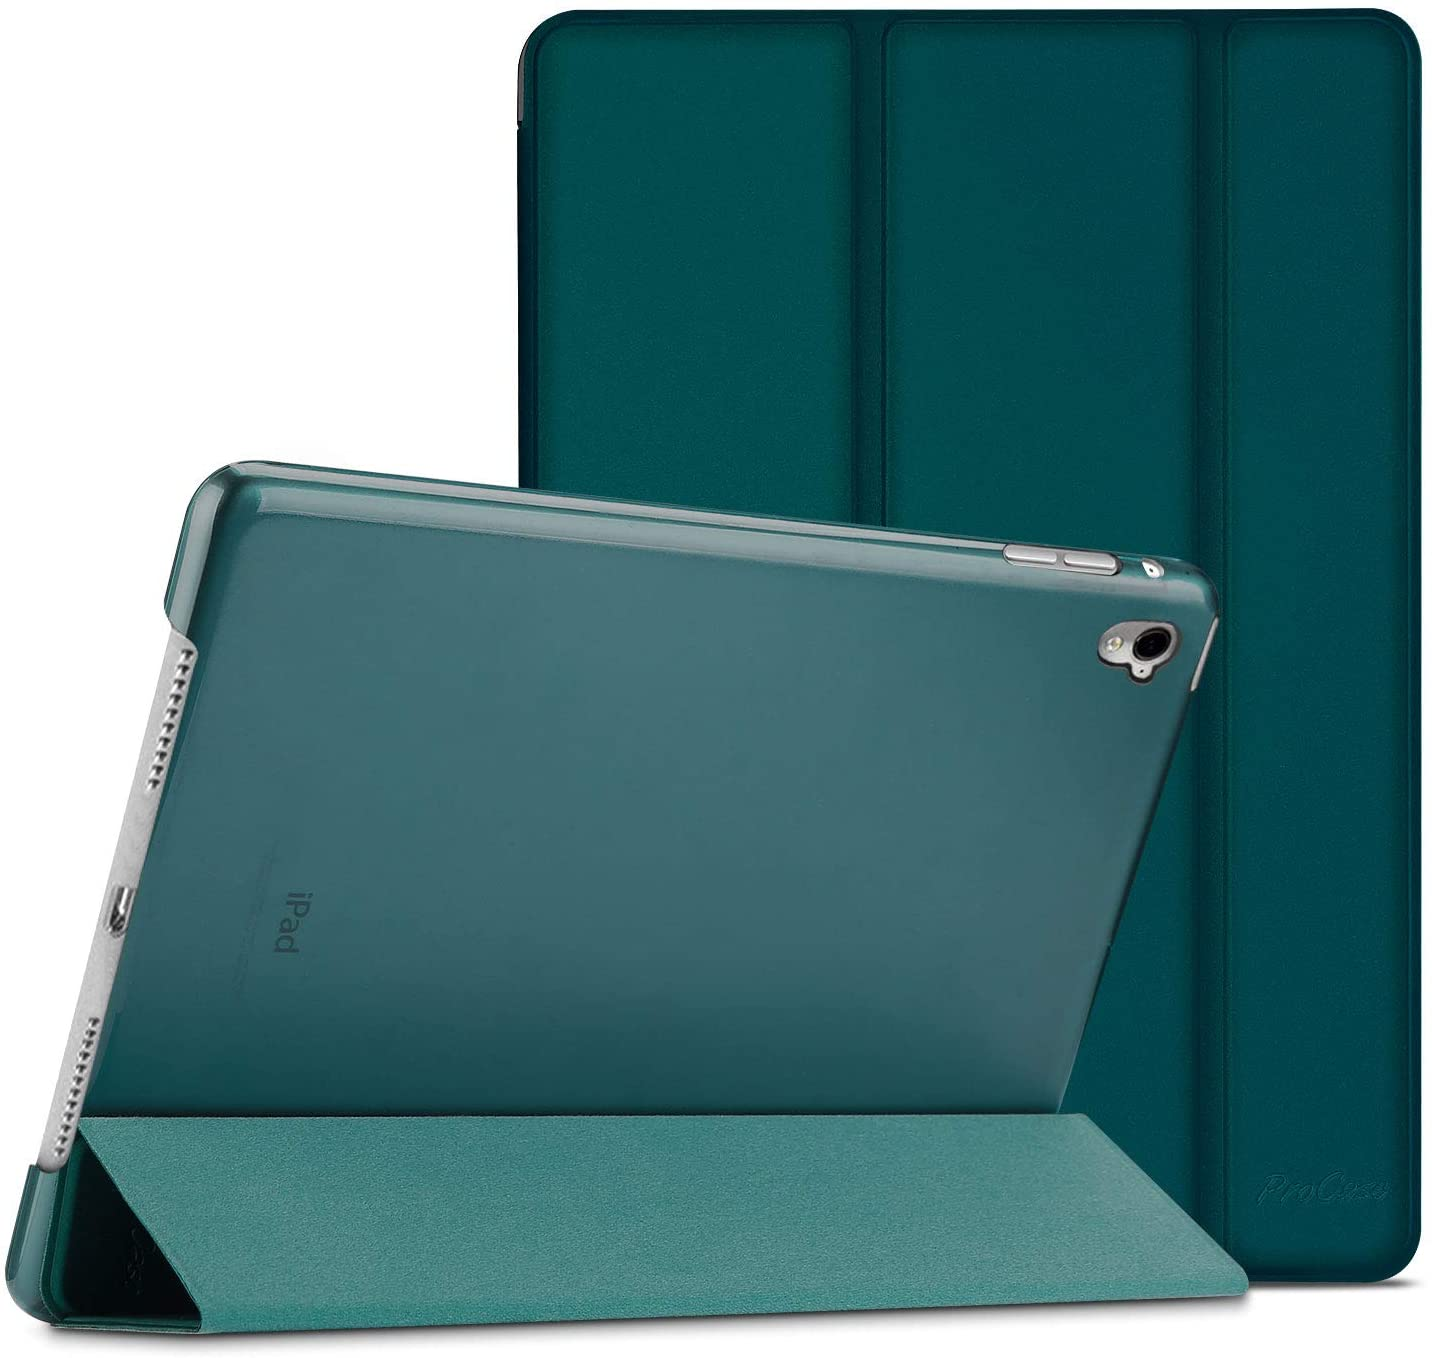 ProCase iPad Pro 9.7 Case 2016 (Old Model), Ultra Slim Lightweight Stand Smart Case Shell with Translucent Frosted Back Cover for Apple iPad Pro 9.7 Inch (A1673 A1674 A1675) -Emerald